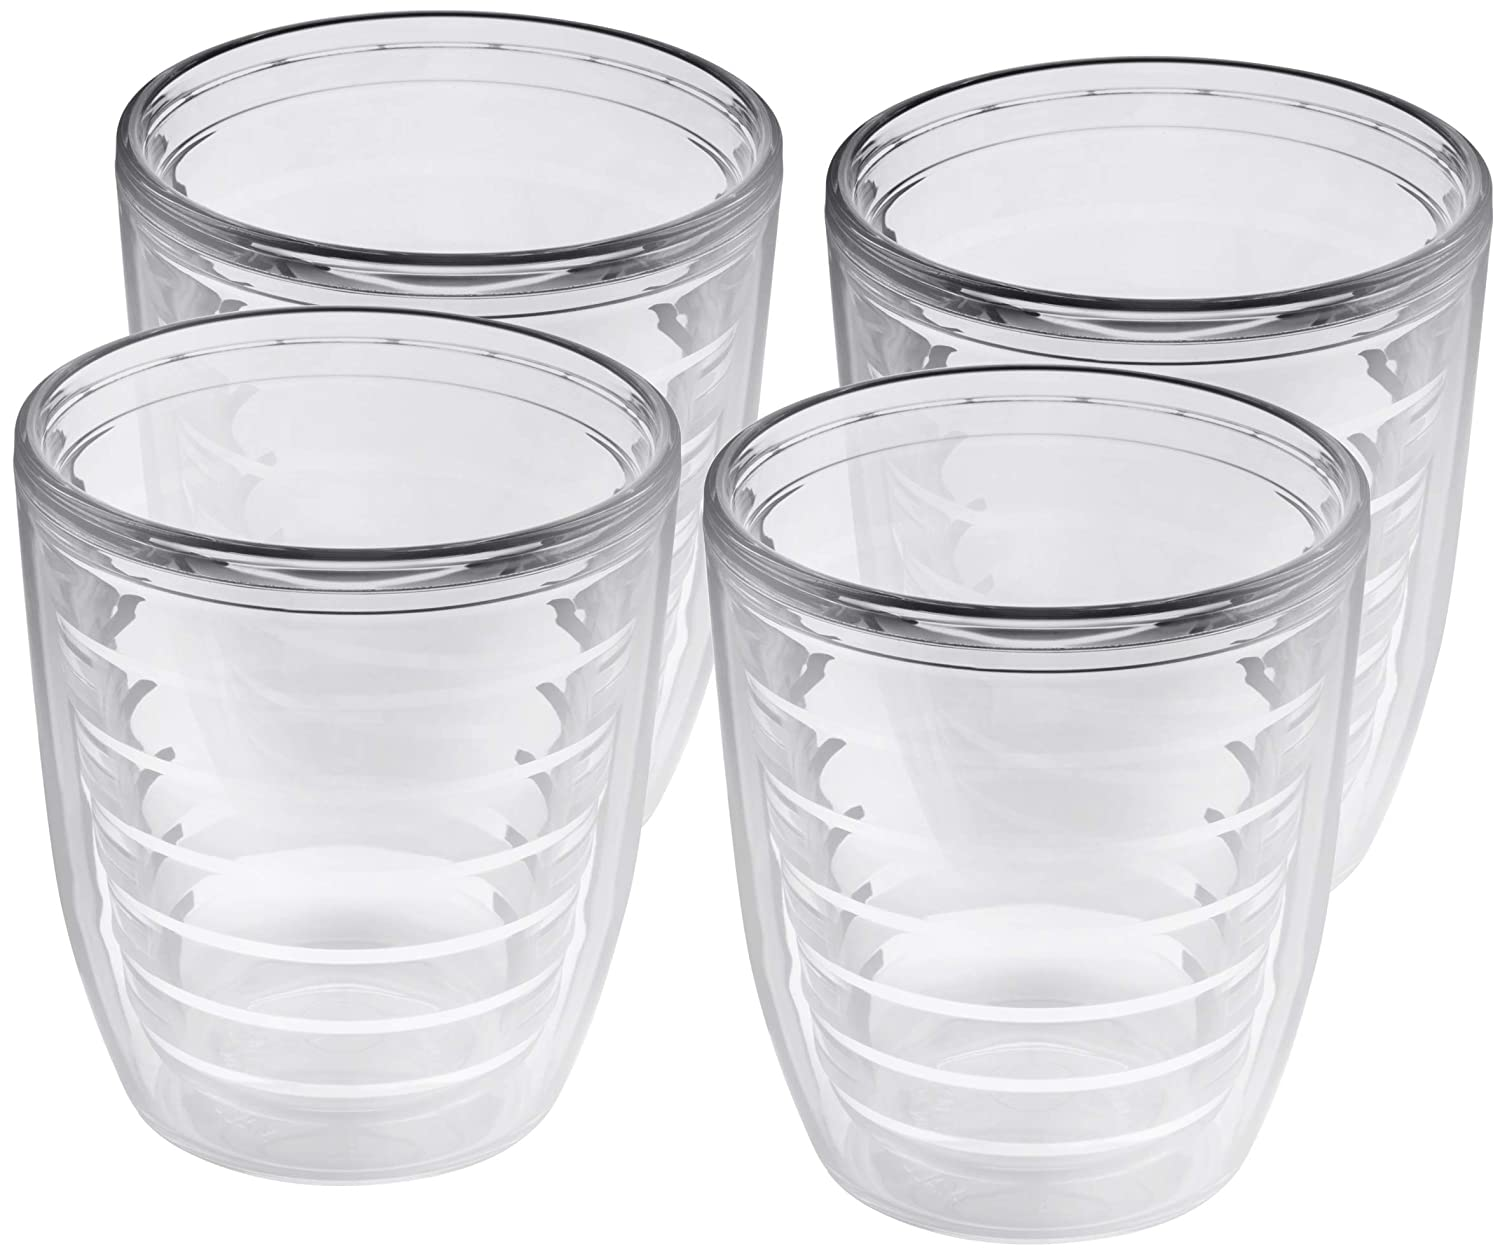 4-pack Insulated 12 Ounce Tumblers - BPA-Free - Made in USA - Clear